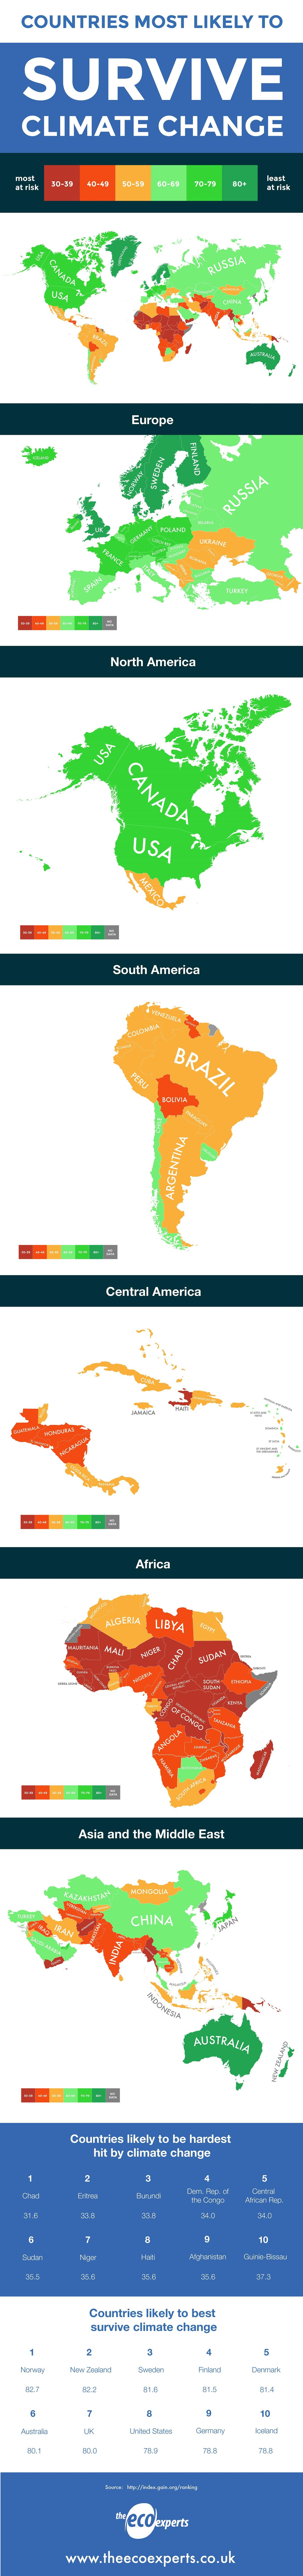 The countries most likely to survive climate change in one infographic